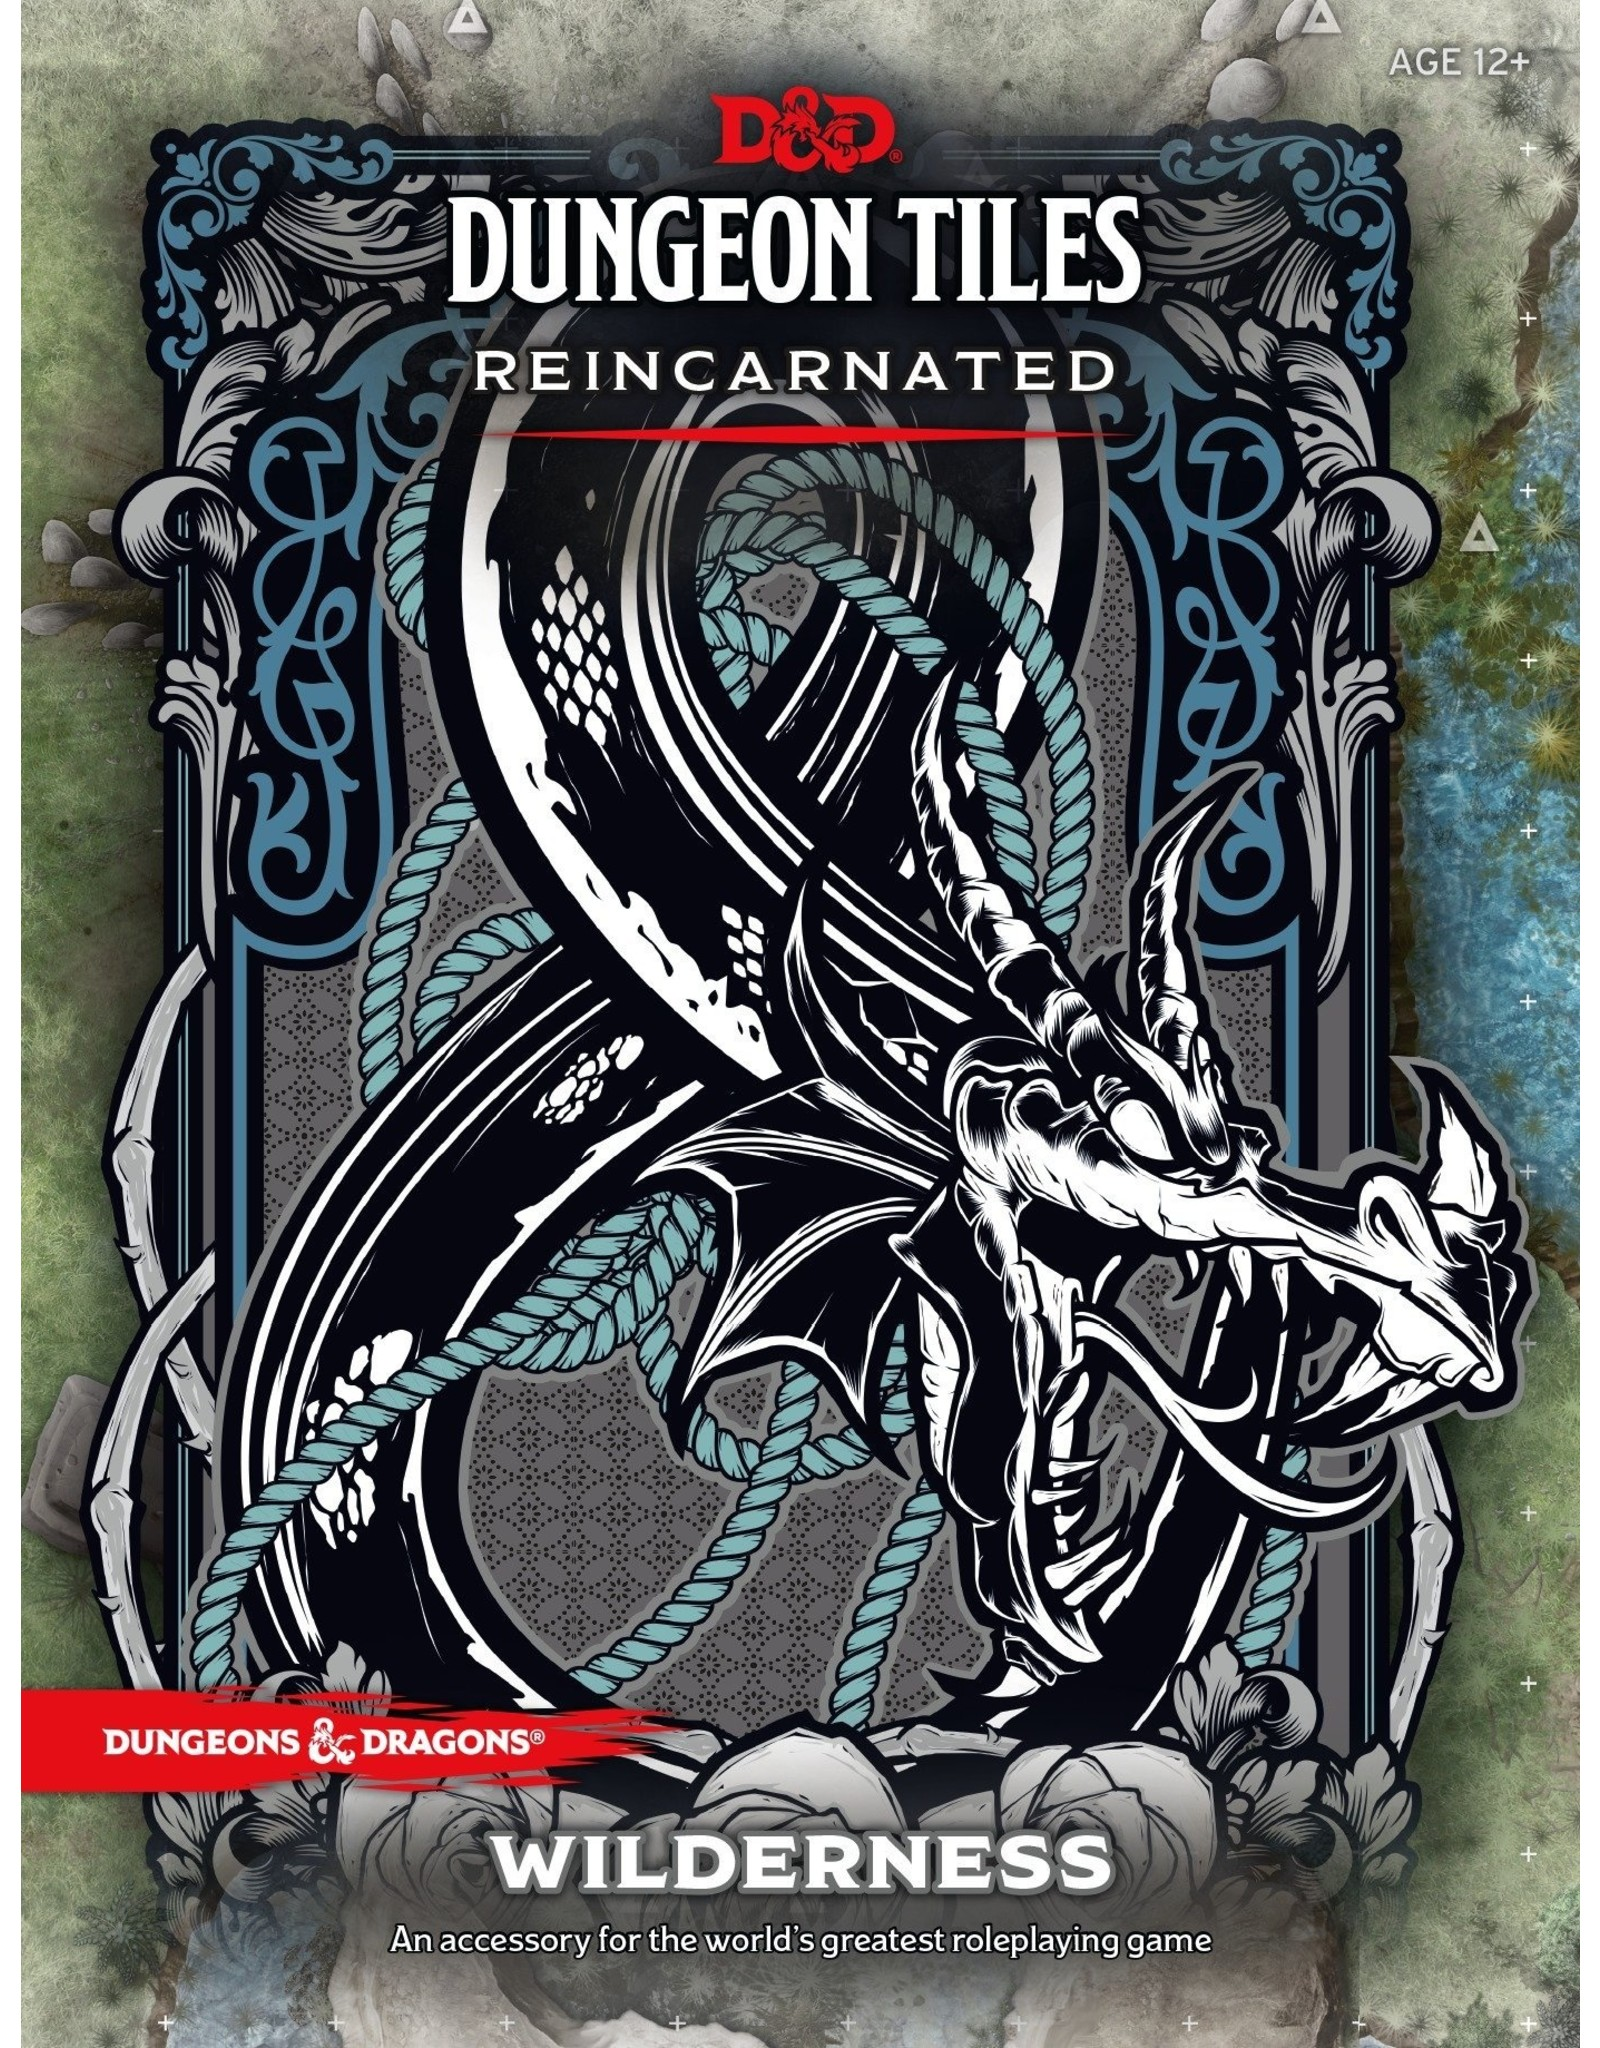 Dungeons & Dragons Dungeon Tiles Reincarnated - WIlderness